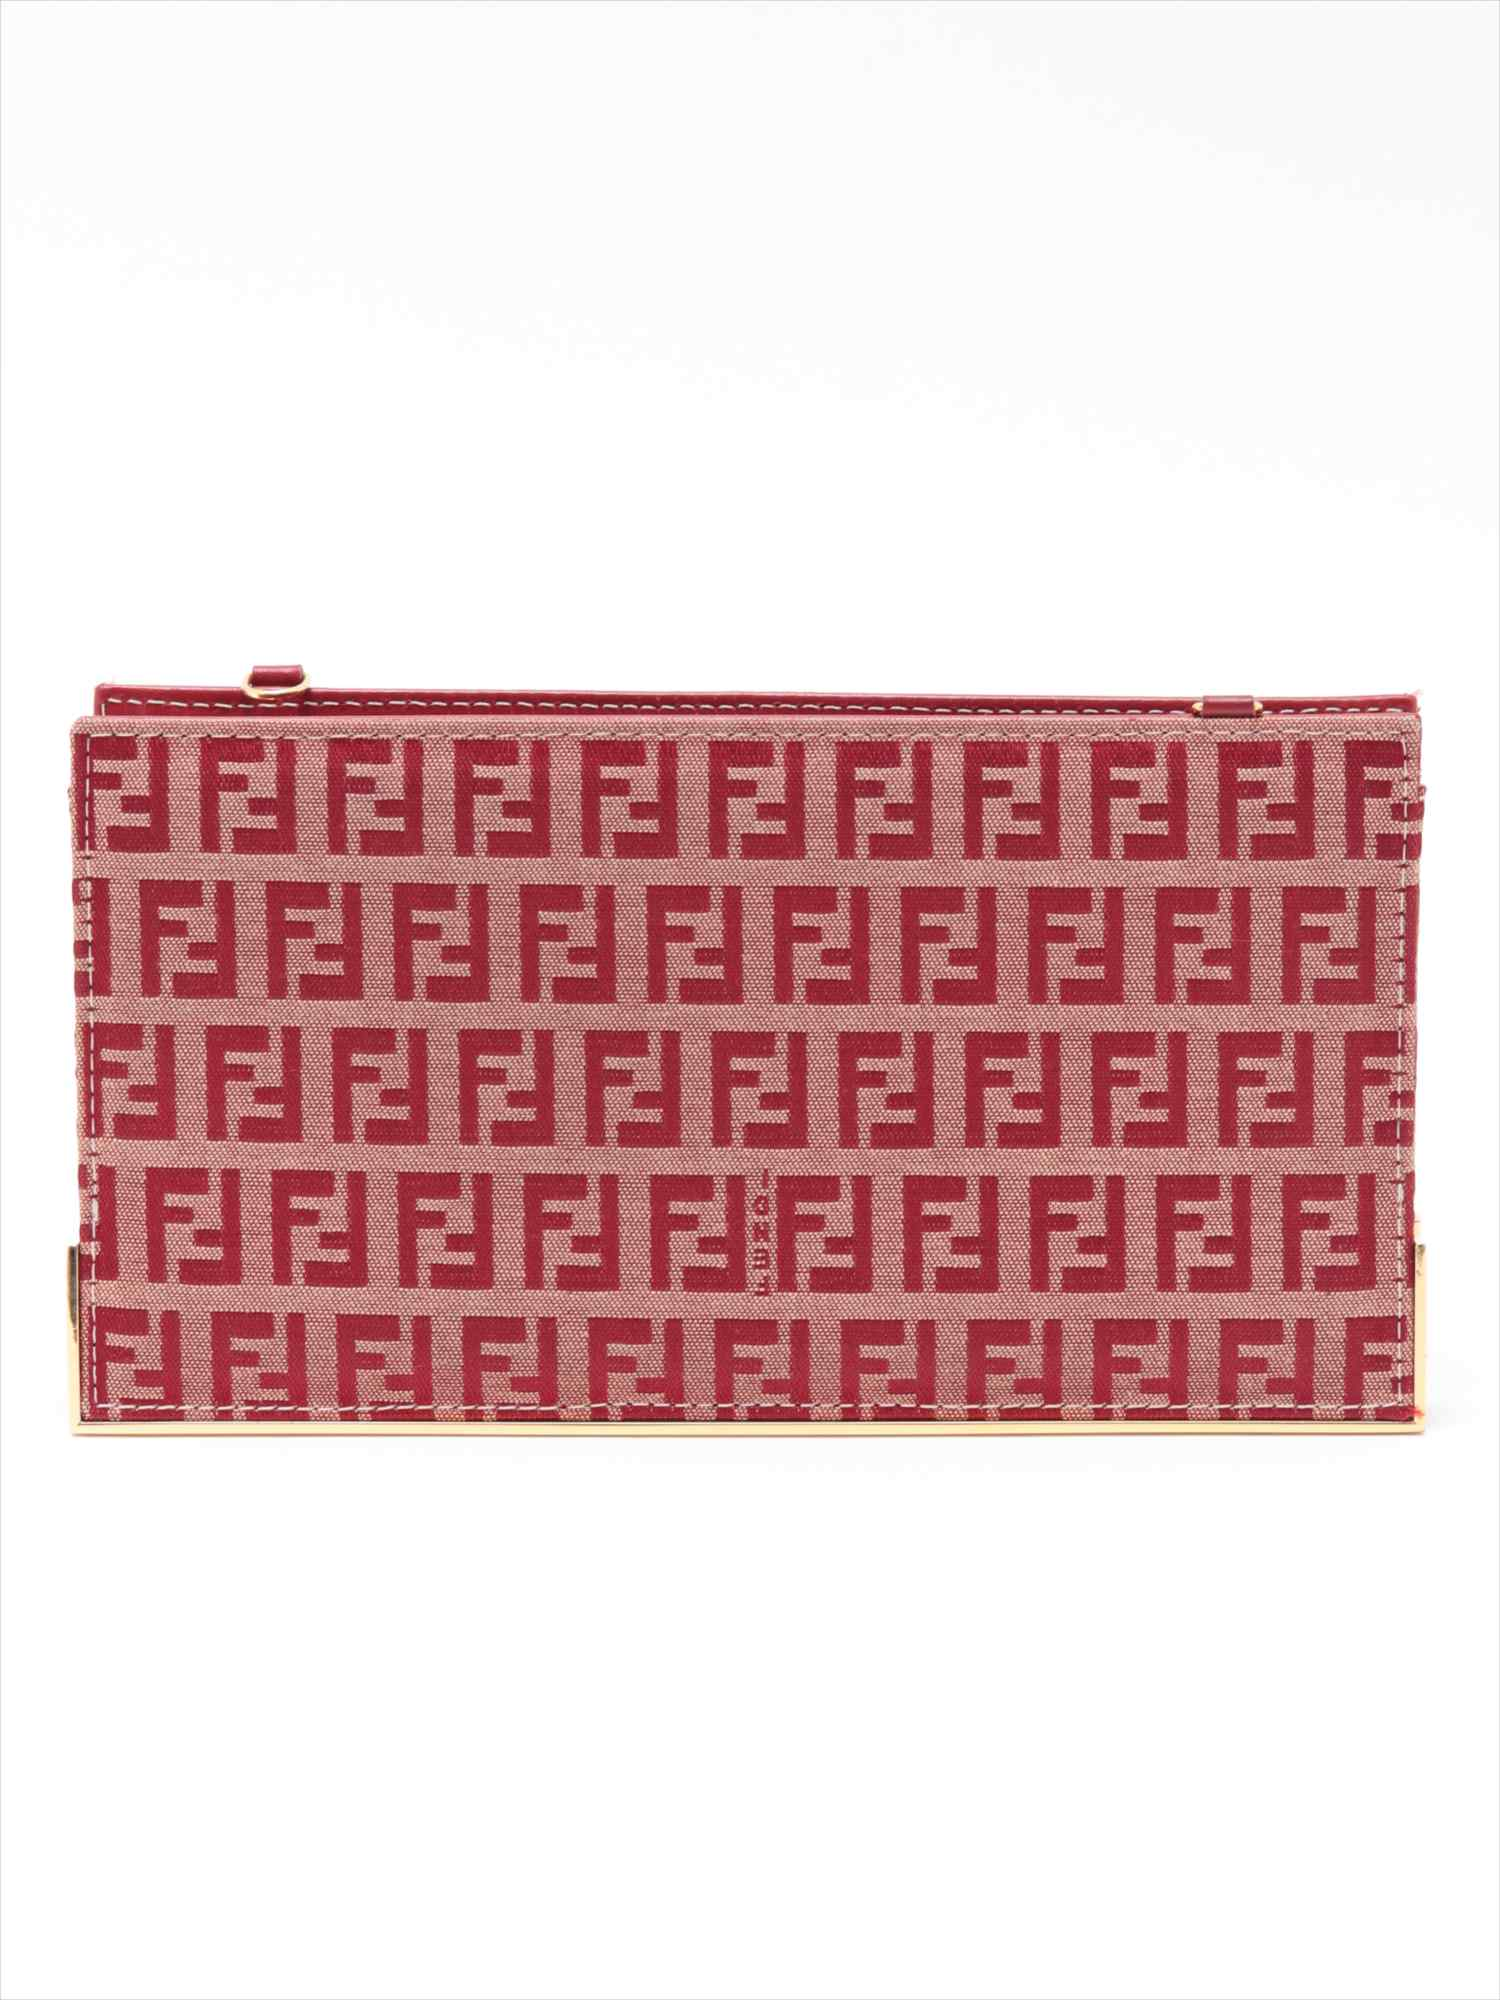 [Used goods] with Fendi Zukkino canvas chain shoulder bag Red chain strap